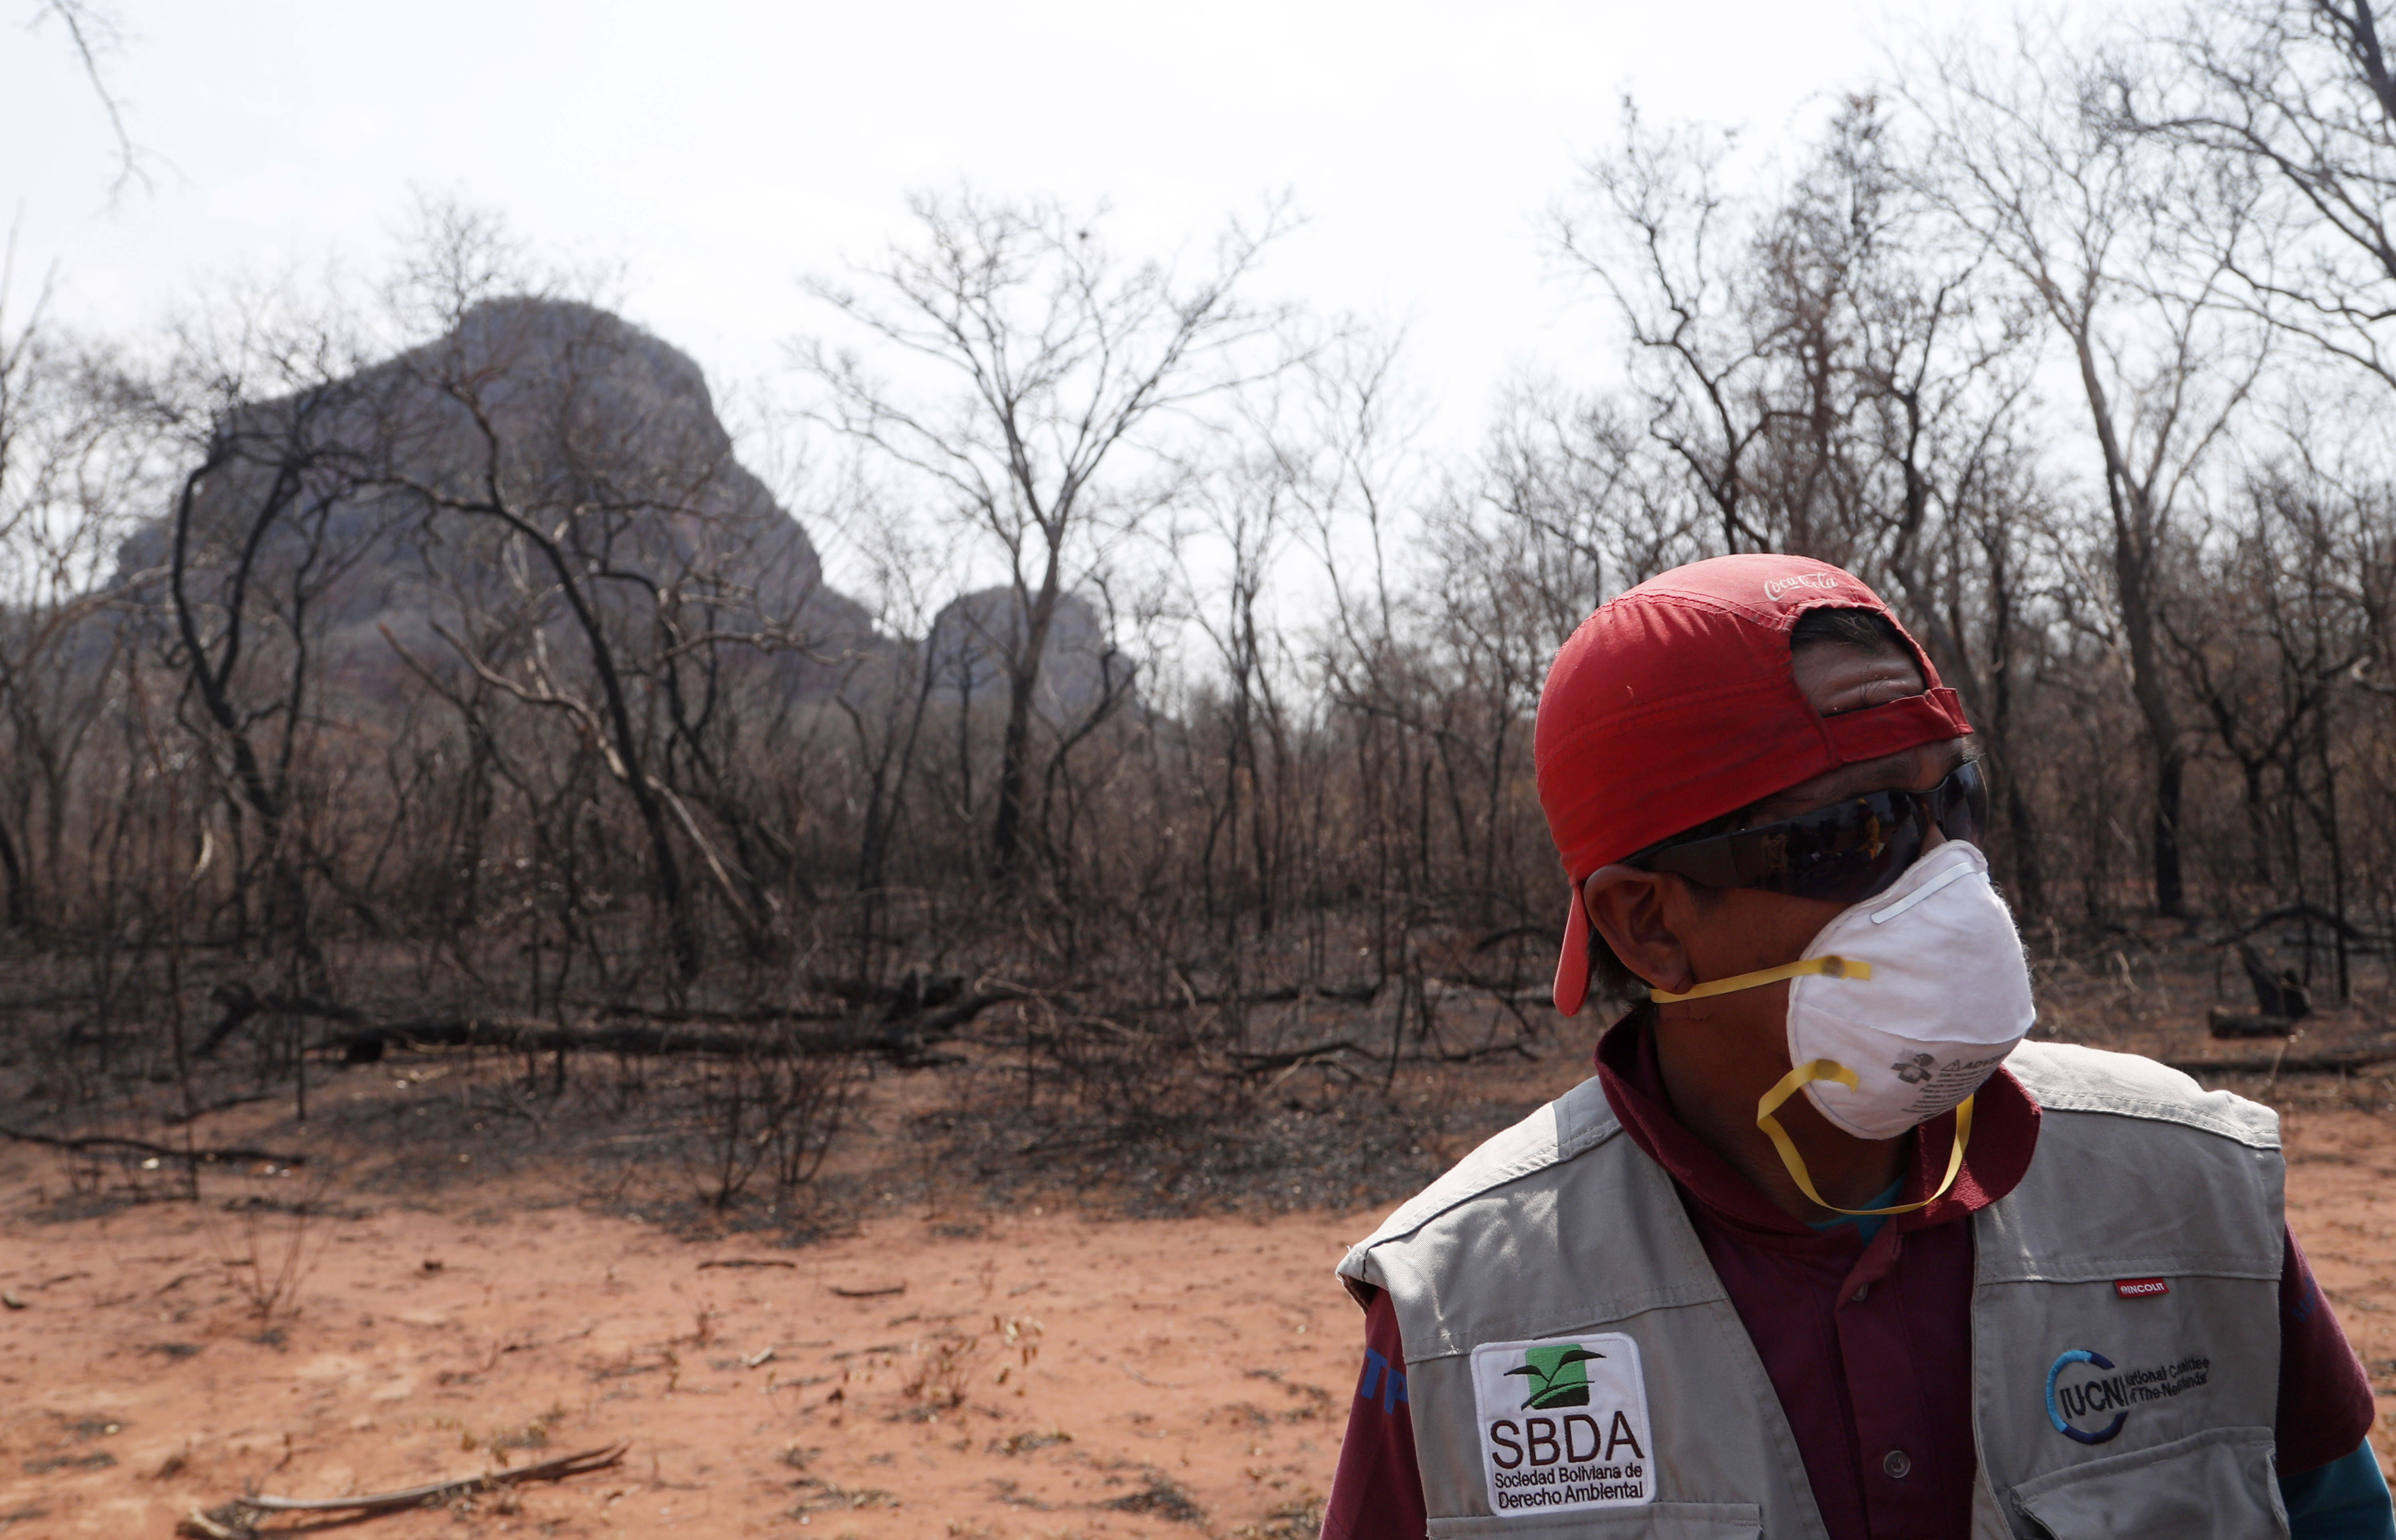 A volunteer stands on land scorched by wildfires in the Chiquitania Forest near Robore, Bolivia, Tuesday, Aug. 27, 2019. While global attention has been focused on fires burning across the Brazilian Amazon, neighboring Bolivia is battling its own vast blazes. (AP Photo/Juan Karita)